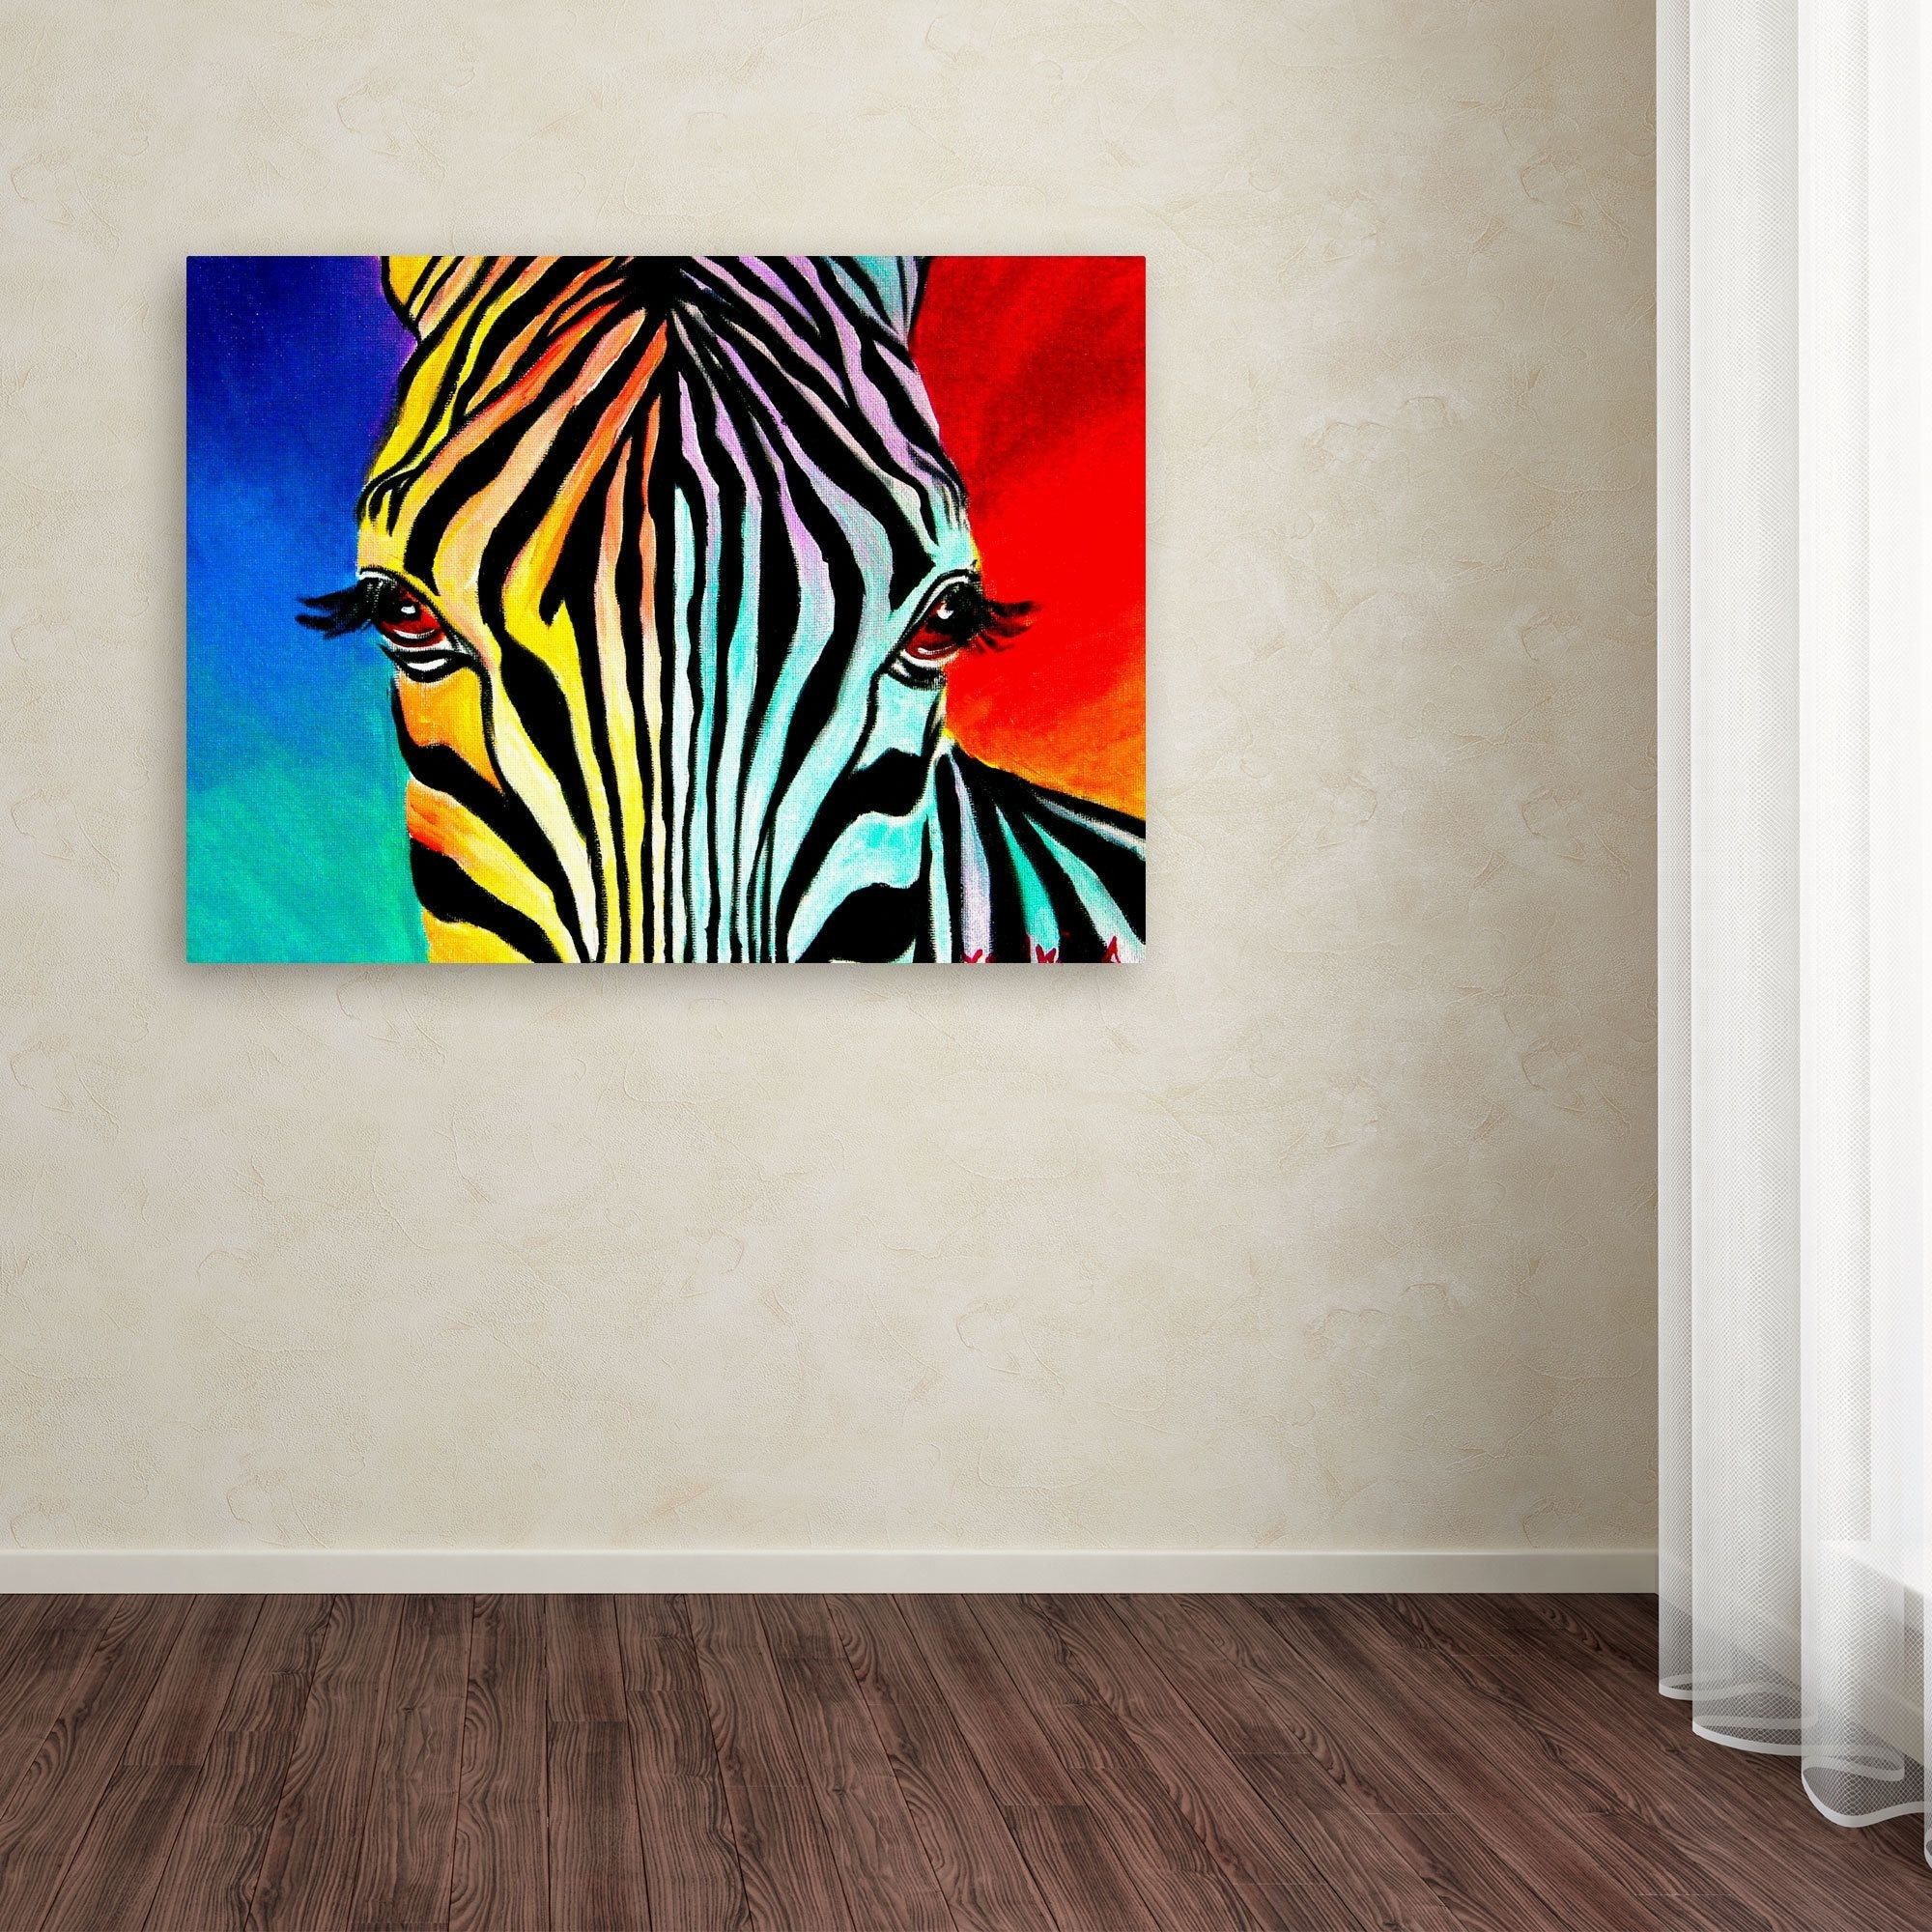 Overstock Wall Art For Recent Dawgart Zebra Canvas Art Inspiration Of Overstock Wall Art (View 11 of 20)